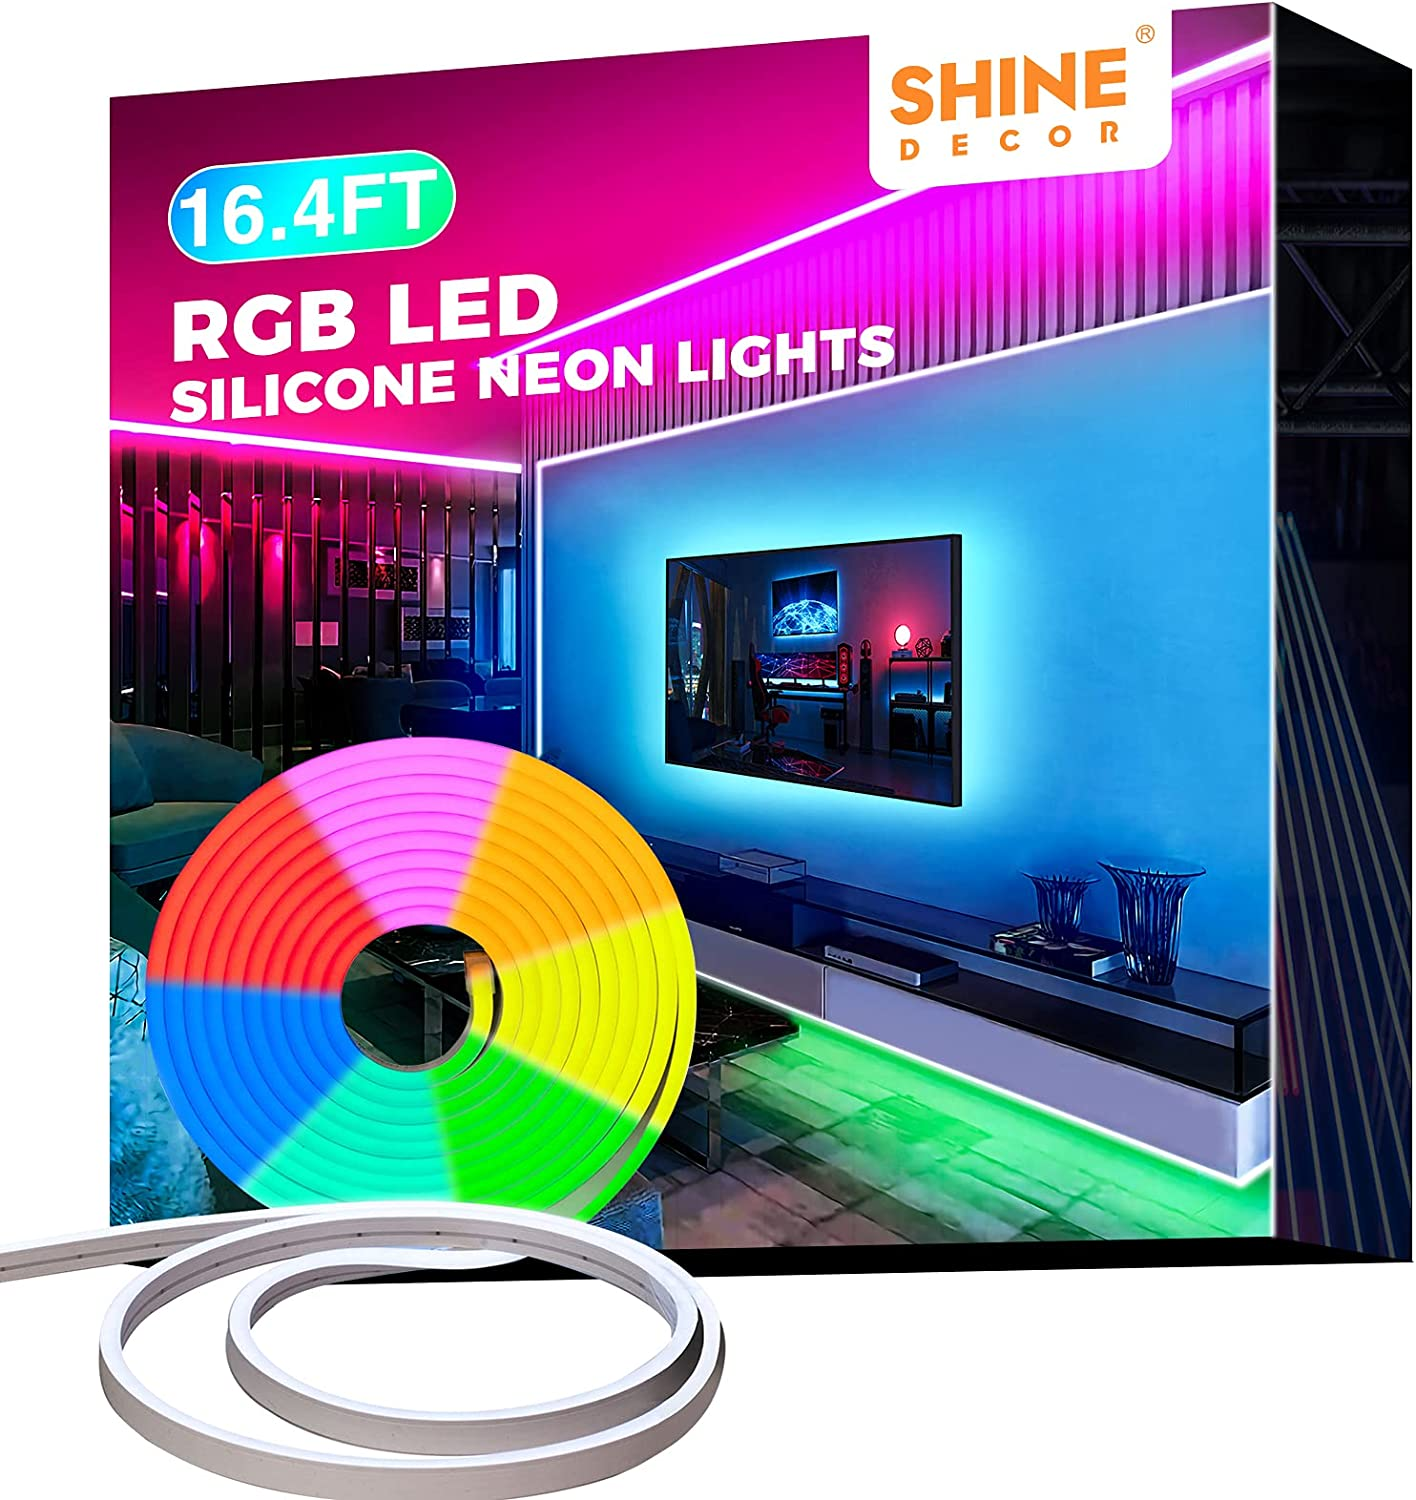 12V LED Baltimore Mall RGB Neon Many popular brands Rope Lights L Silicone Decor 16.4FT Shine